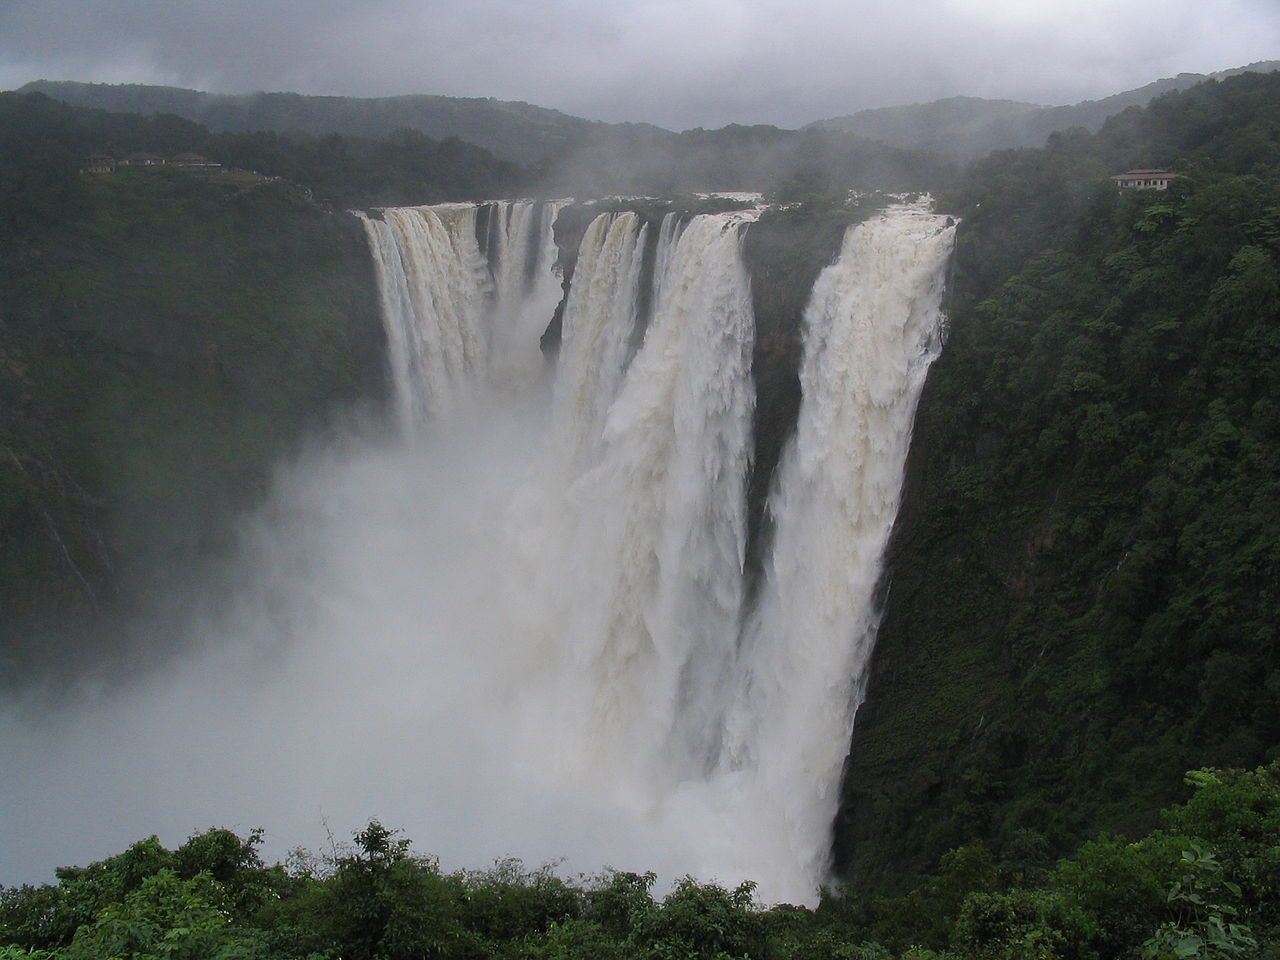 Jog Falls (Shimoga) Tourism The Second-Highest Waterfall in India